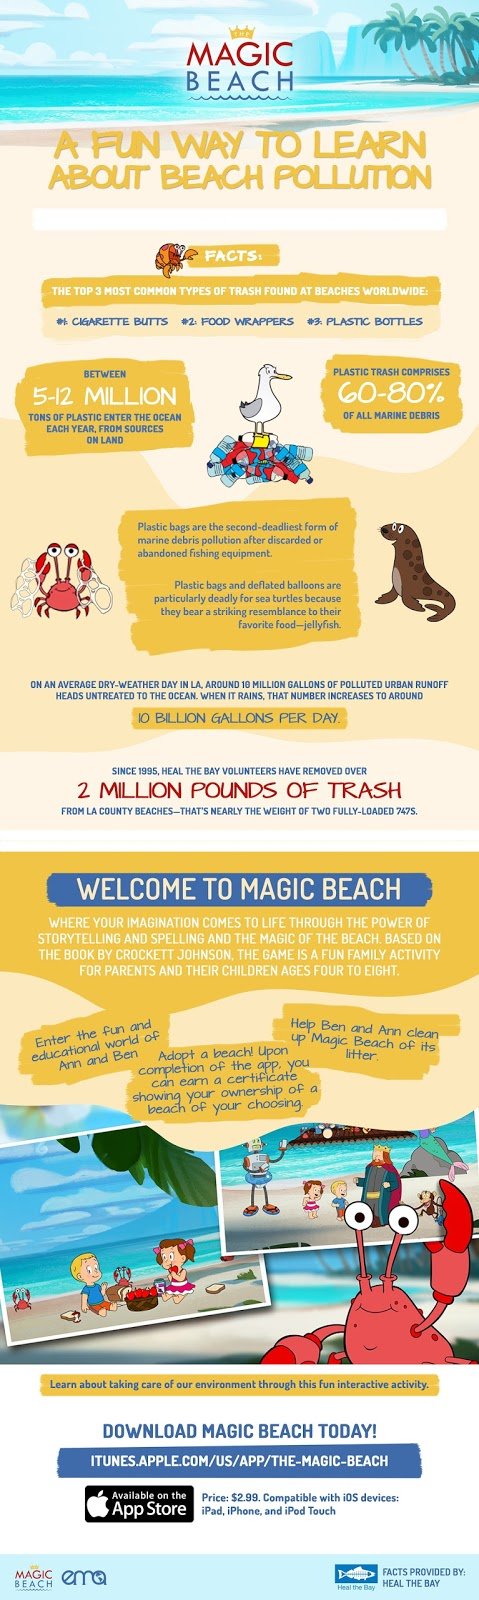 beach pollution prevention